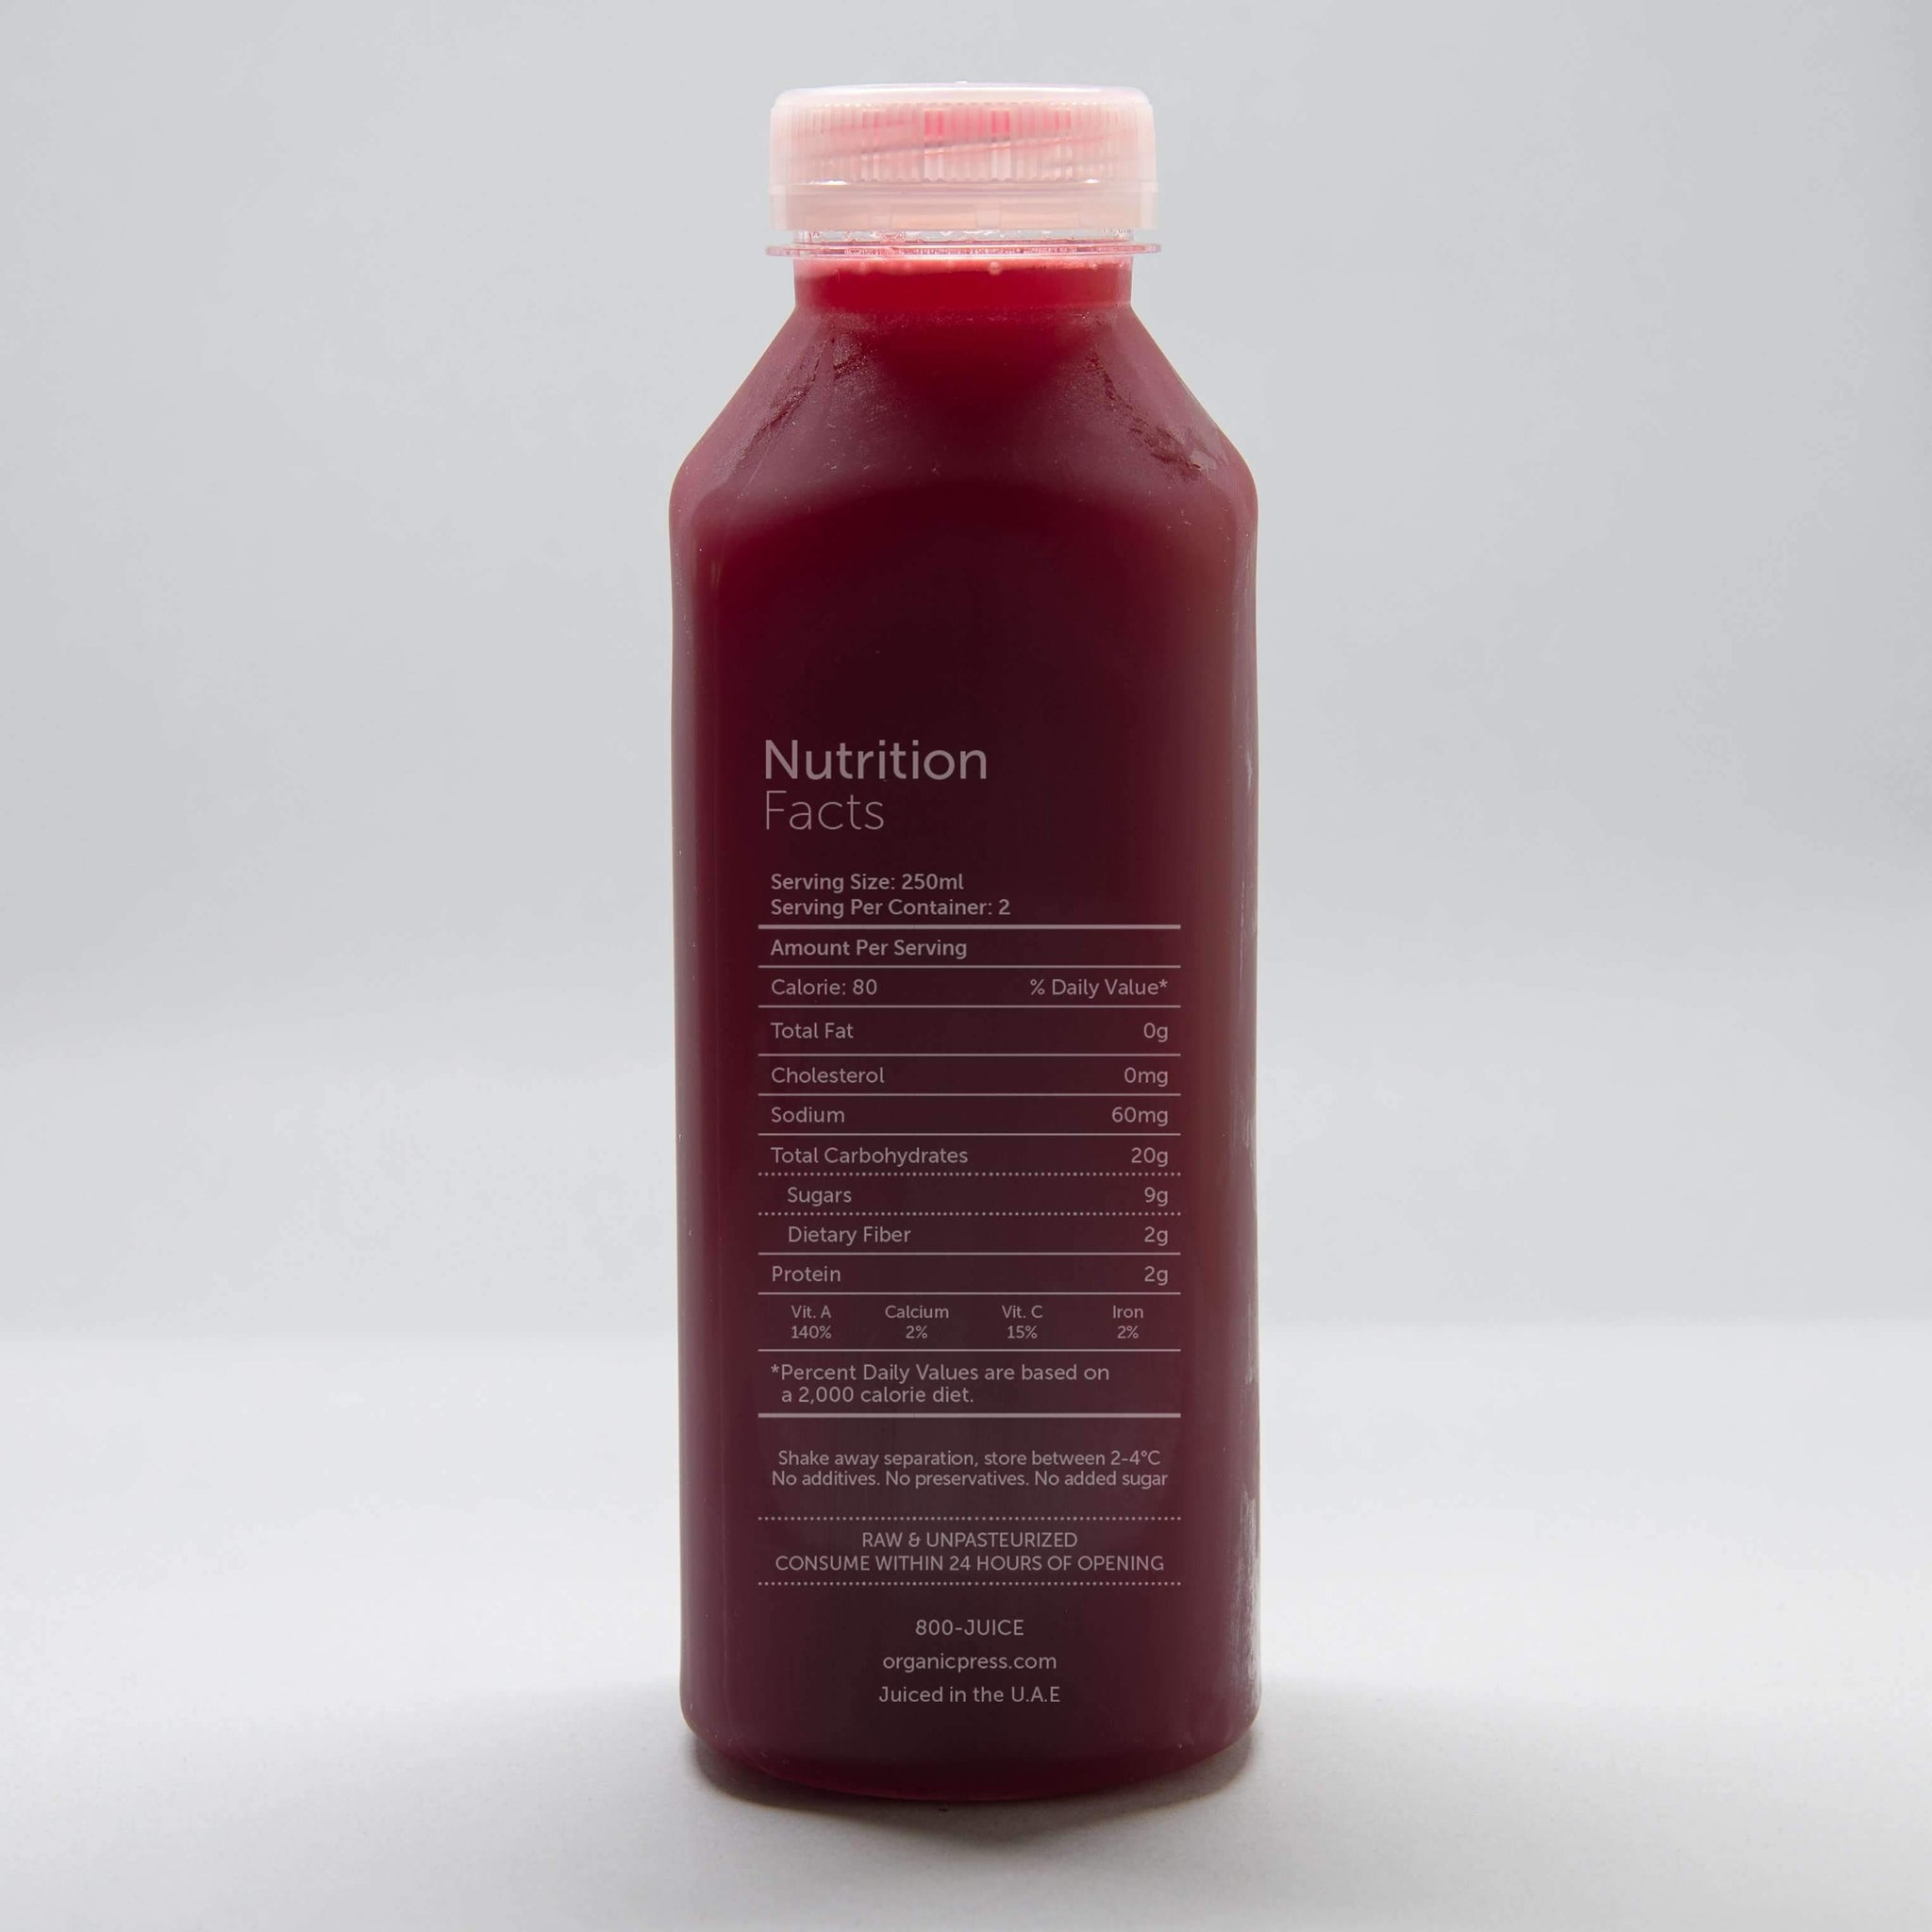 Beet It: Beetroot, Carrot, Apple, Lemon & Ginger (500ml)